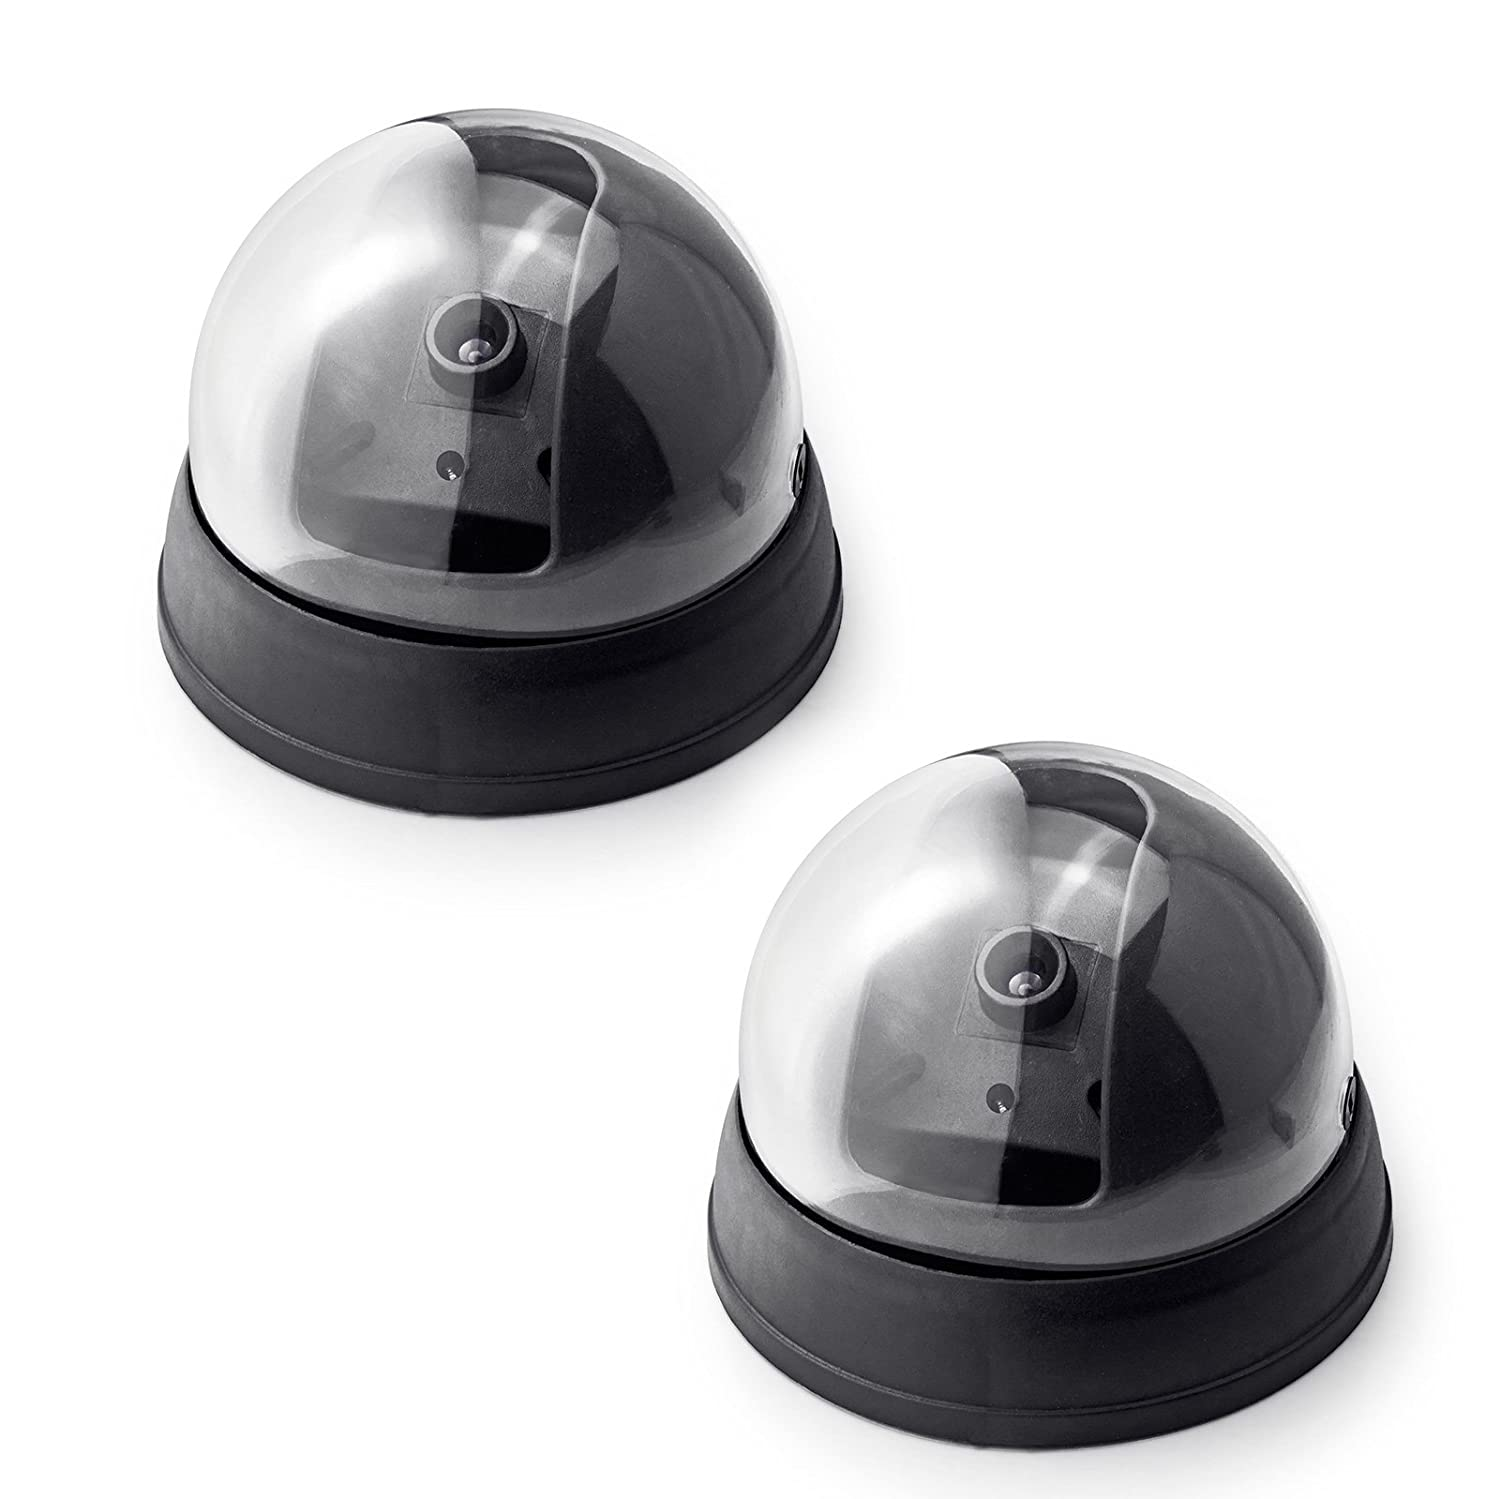 Fake Security Camera,Fuers Simulation Dummy Hemisphere Dome Camera Indoor/Outdoor Waterproof with Flashing Red LED Light and CCTV Warning Sticker for Home Business,2 Pack